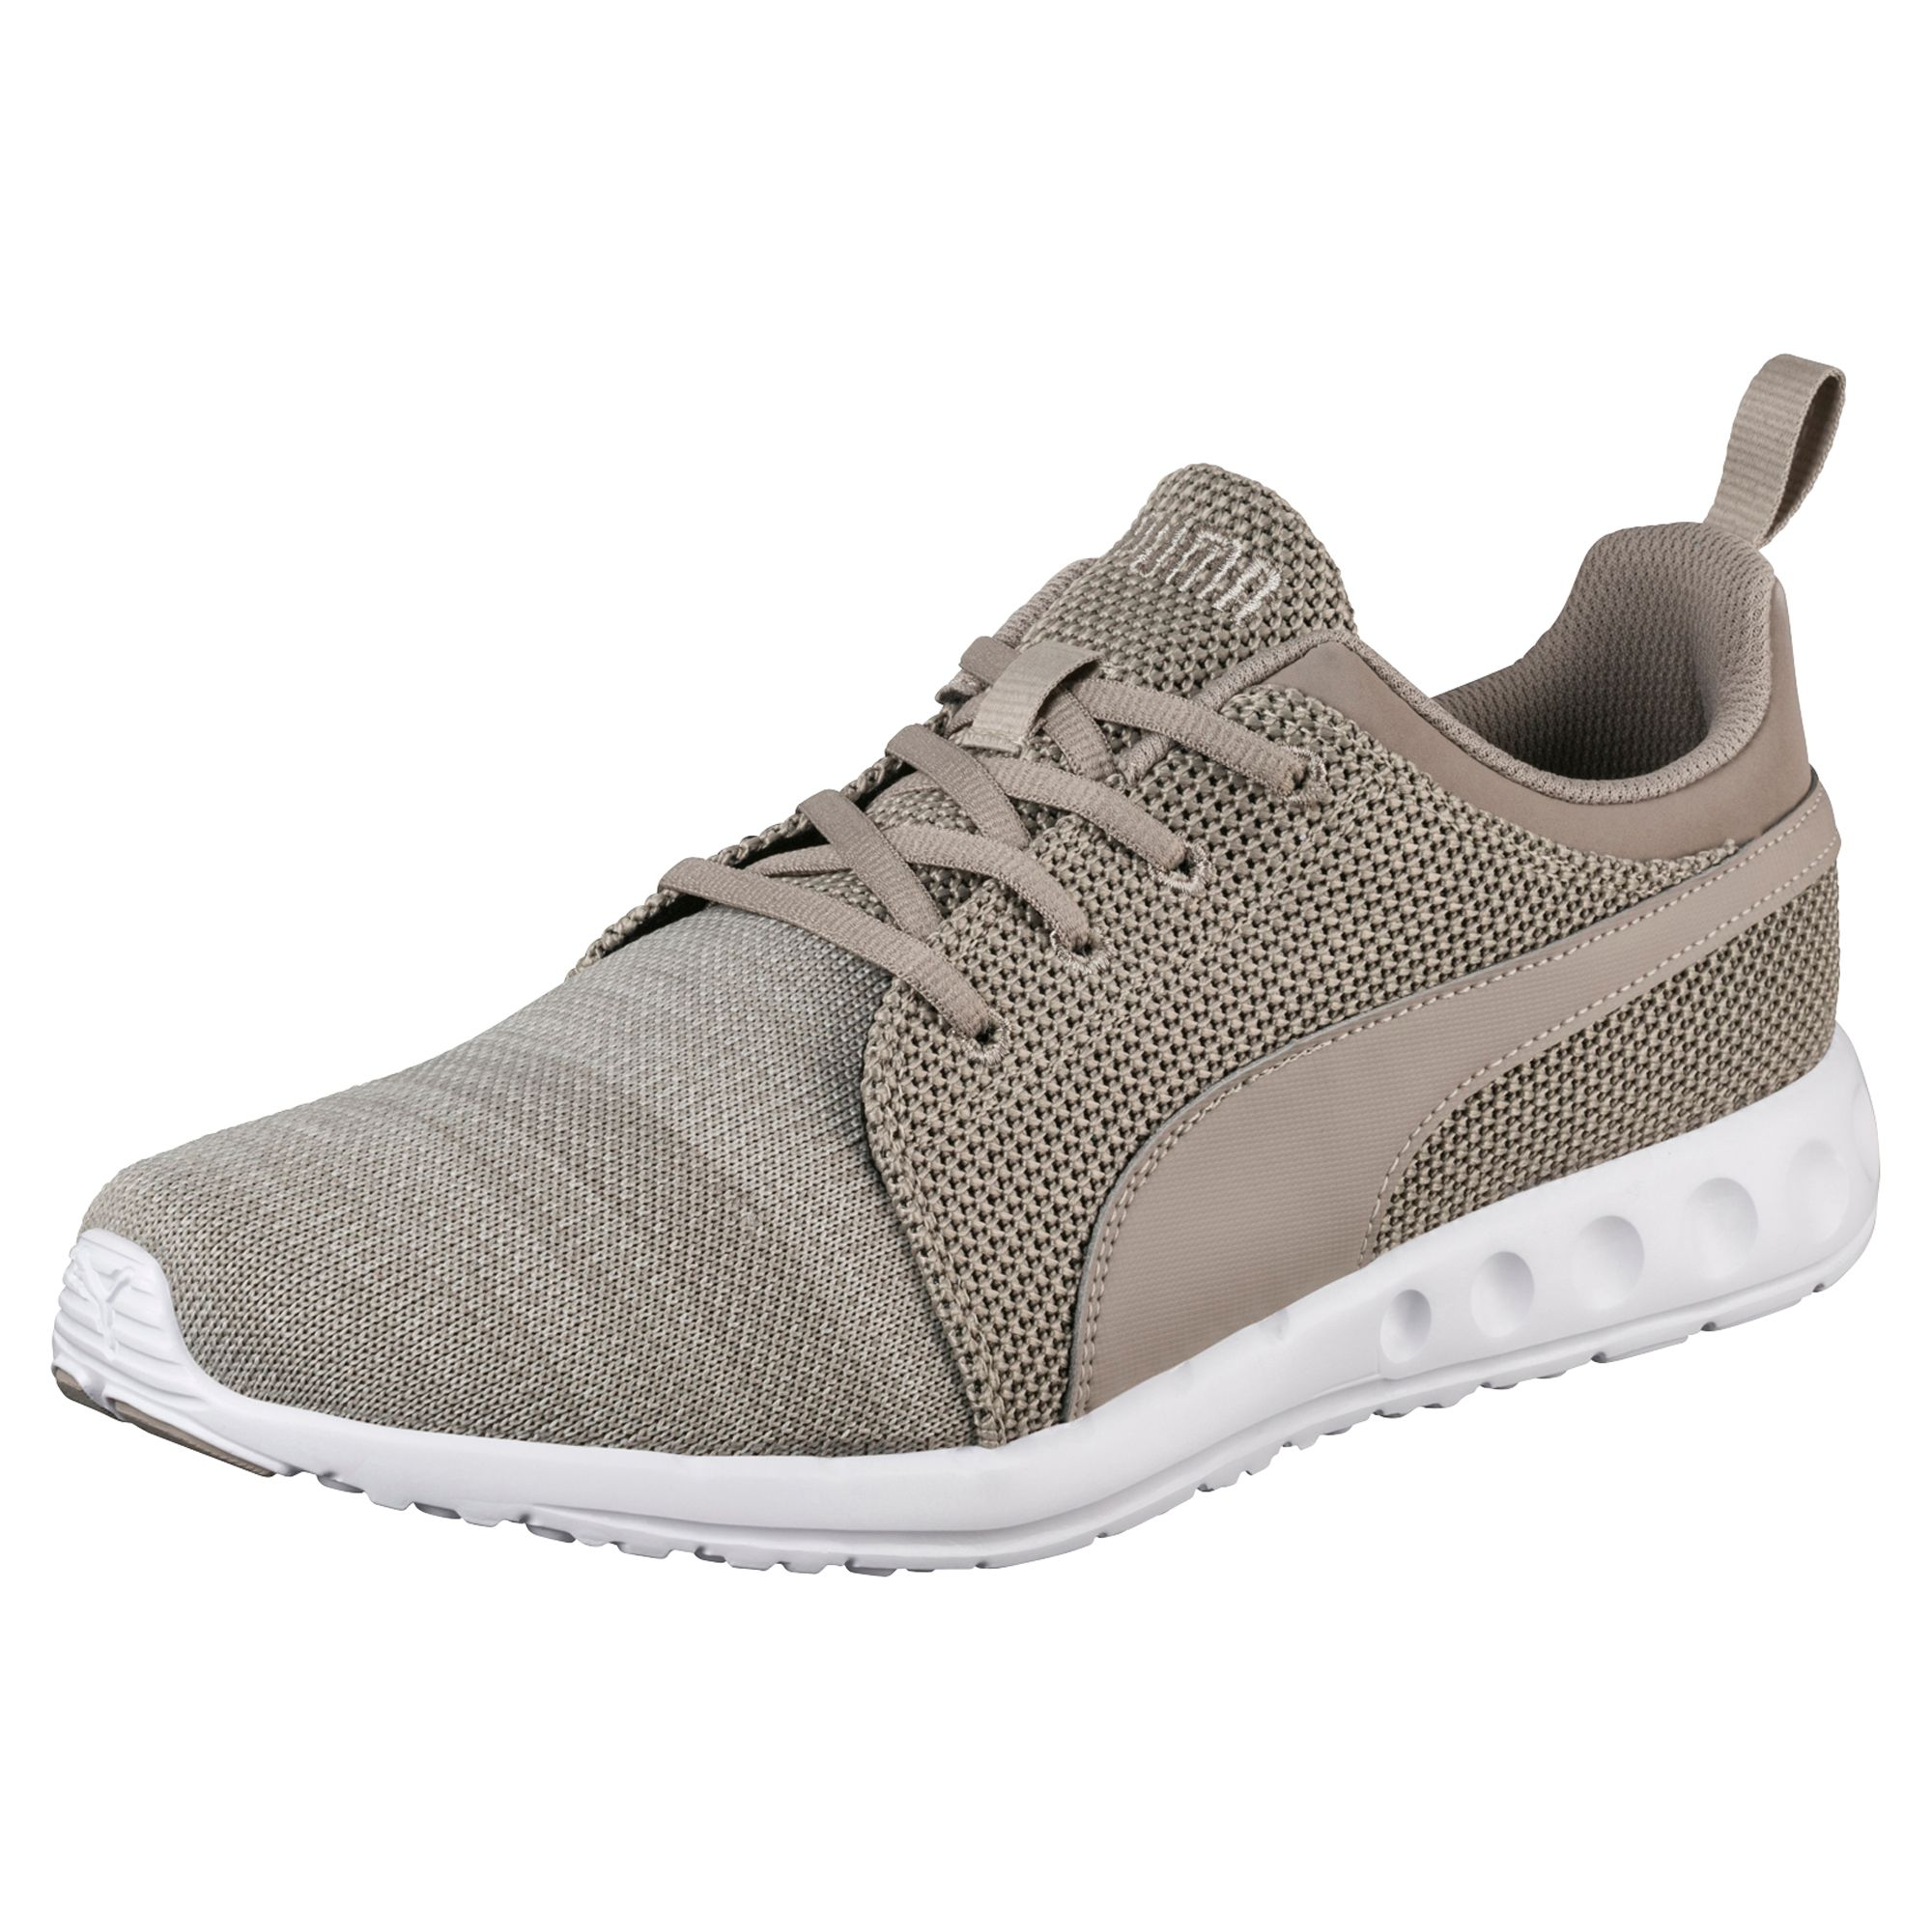 puma chaussure de course carson runner knit pour homme unisexe chaussures neuf ebay. Black Bedroom Furniture Sets. Home Design Ideas